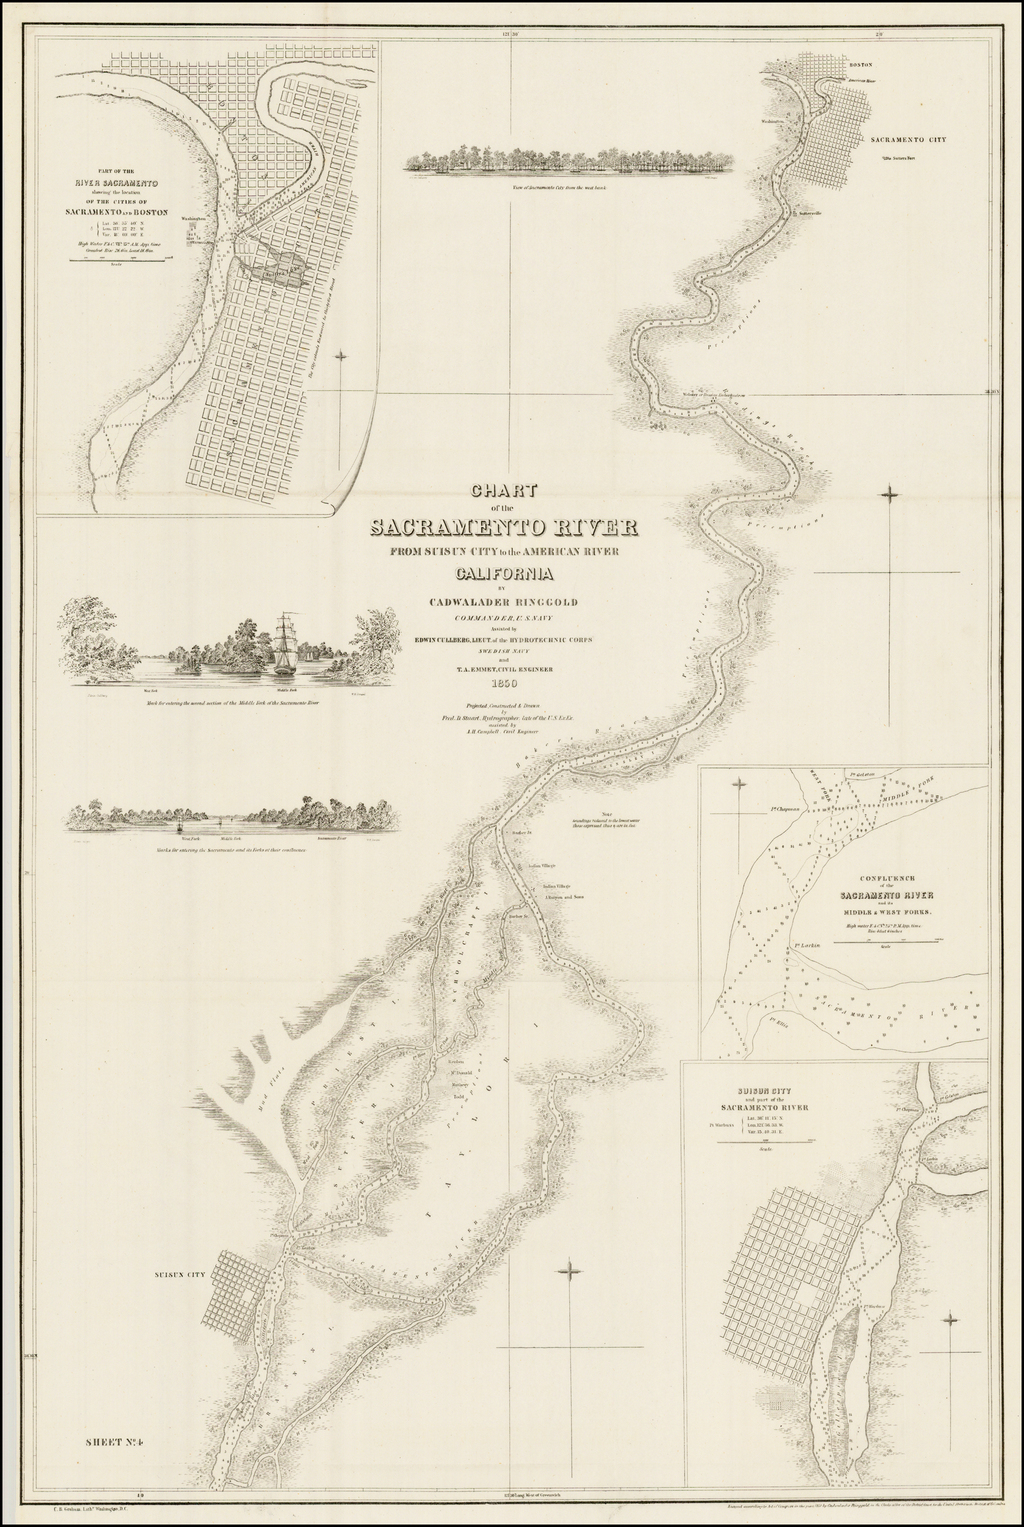 Chart of the Sacramento River From Suisun City to the American River California . . . 1850 By Cadwalader Ringgold